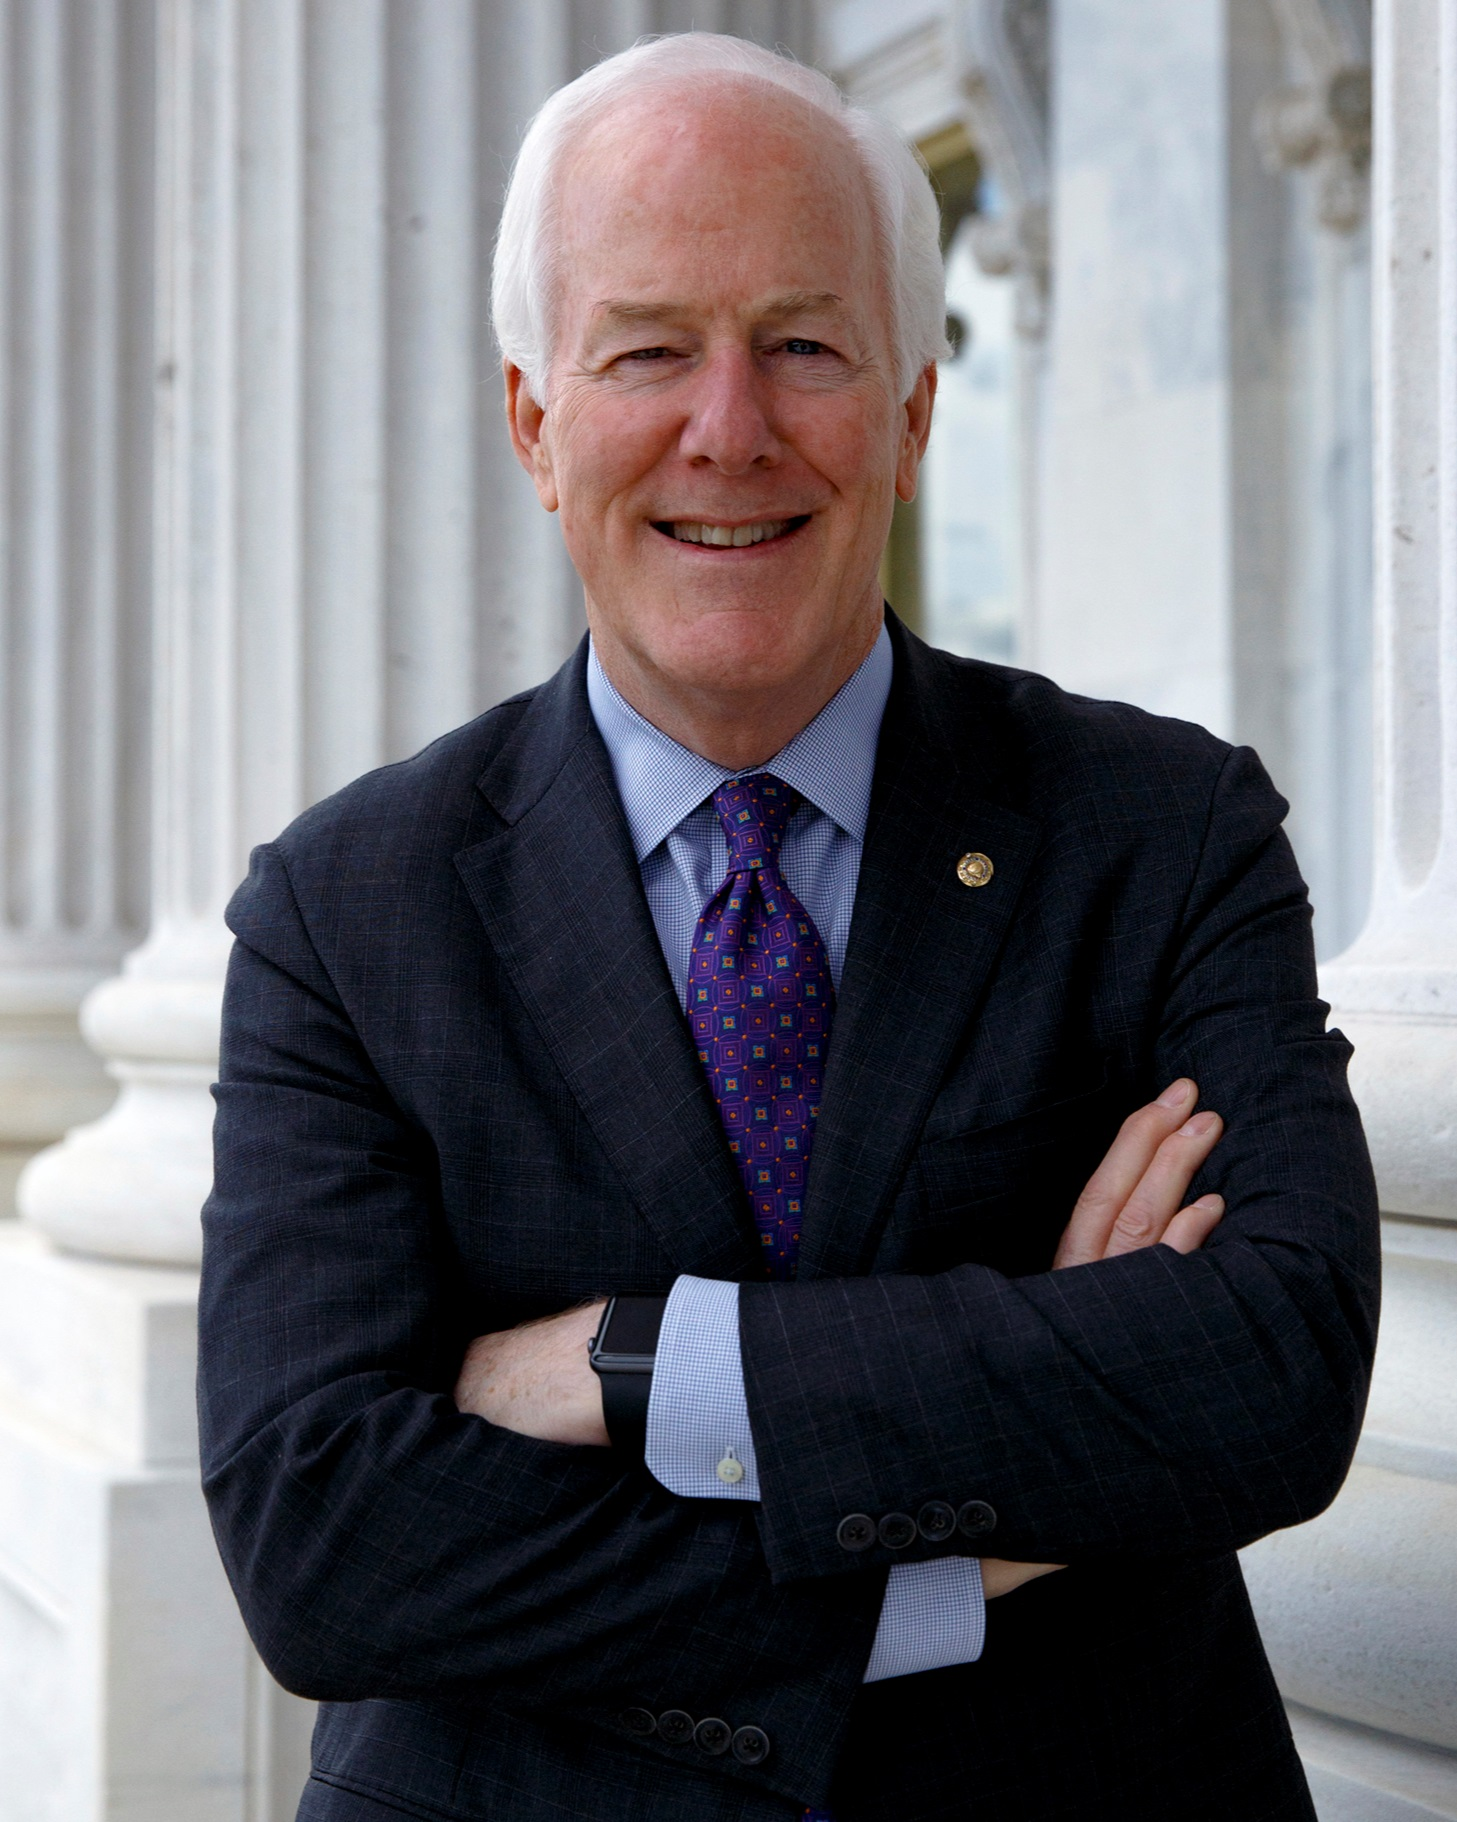 John Cornyn, United States Senator - 517 Hart Senate Office BuildingWashington, DC 20510(202) 224-2934